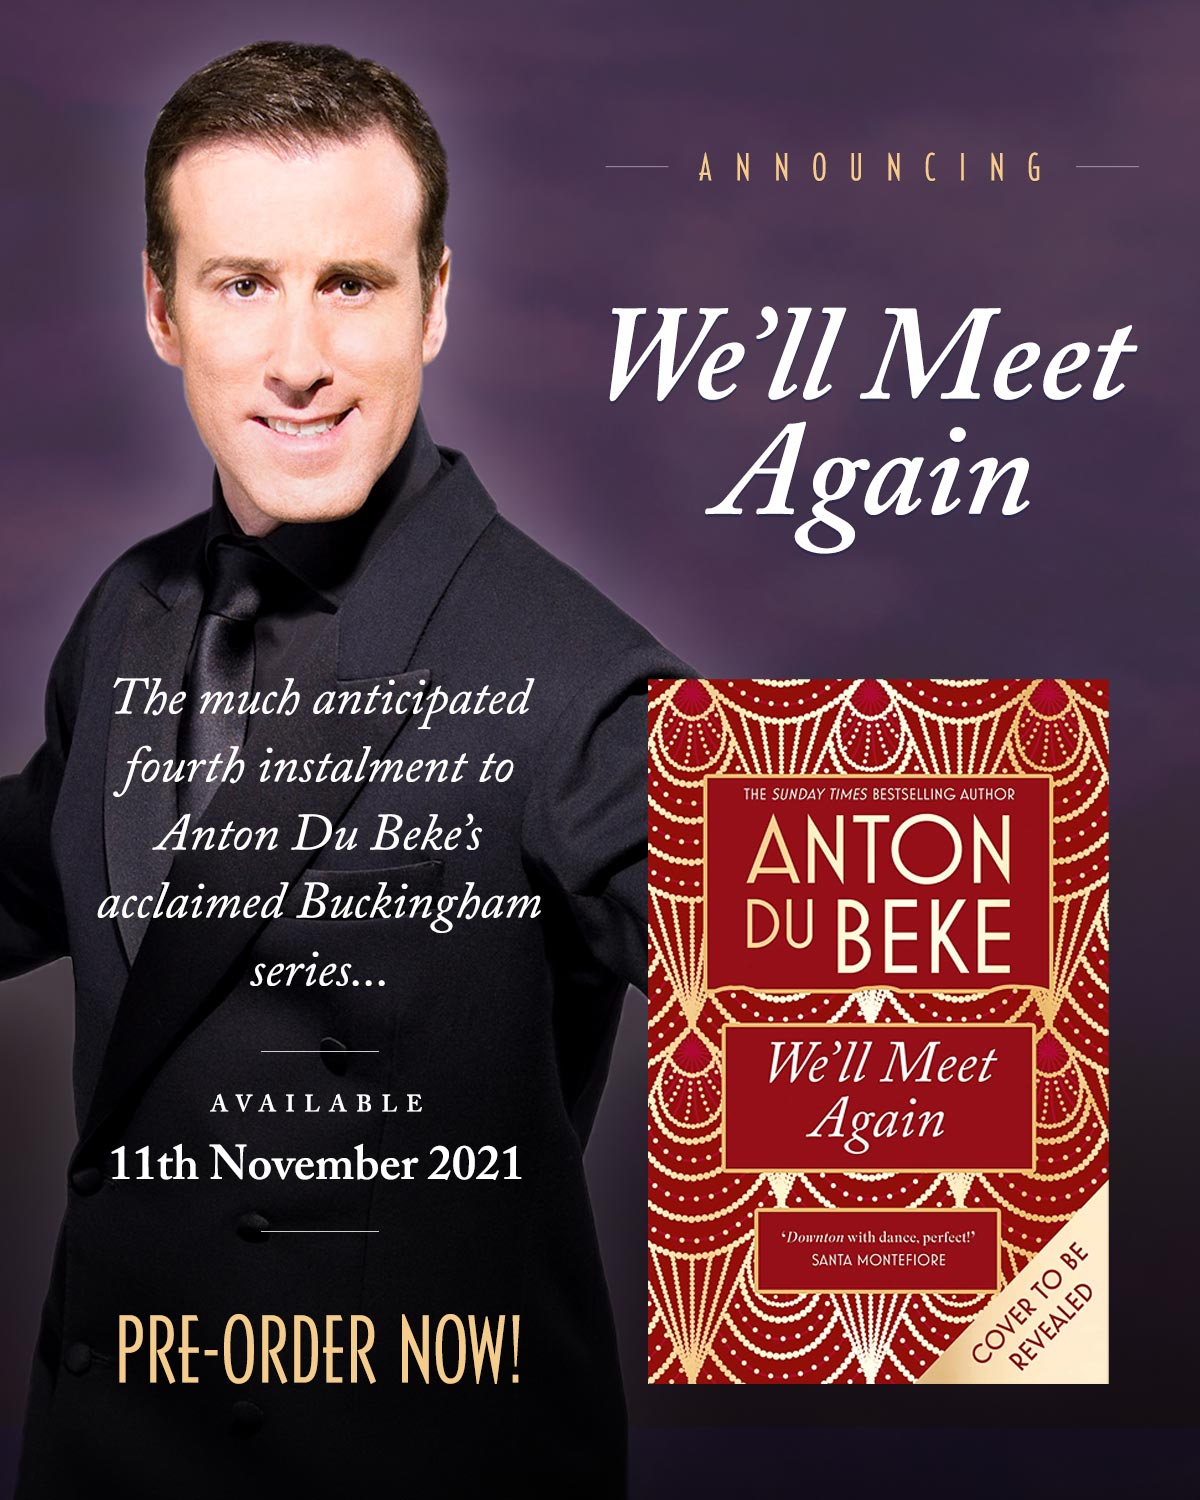 We'll Meet Again - the 4th Novel from Anton Du Beke - pre-order now!